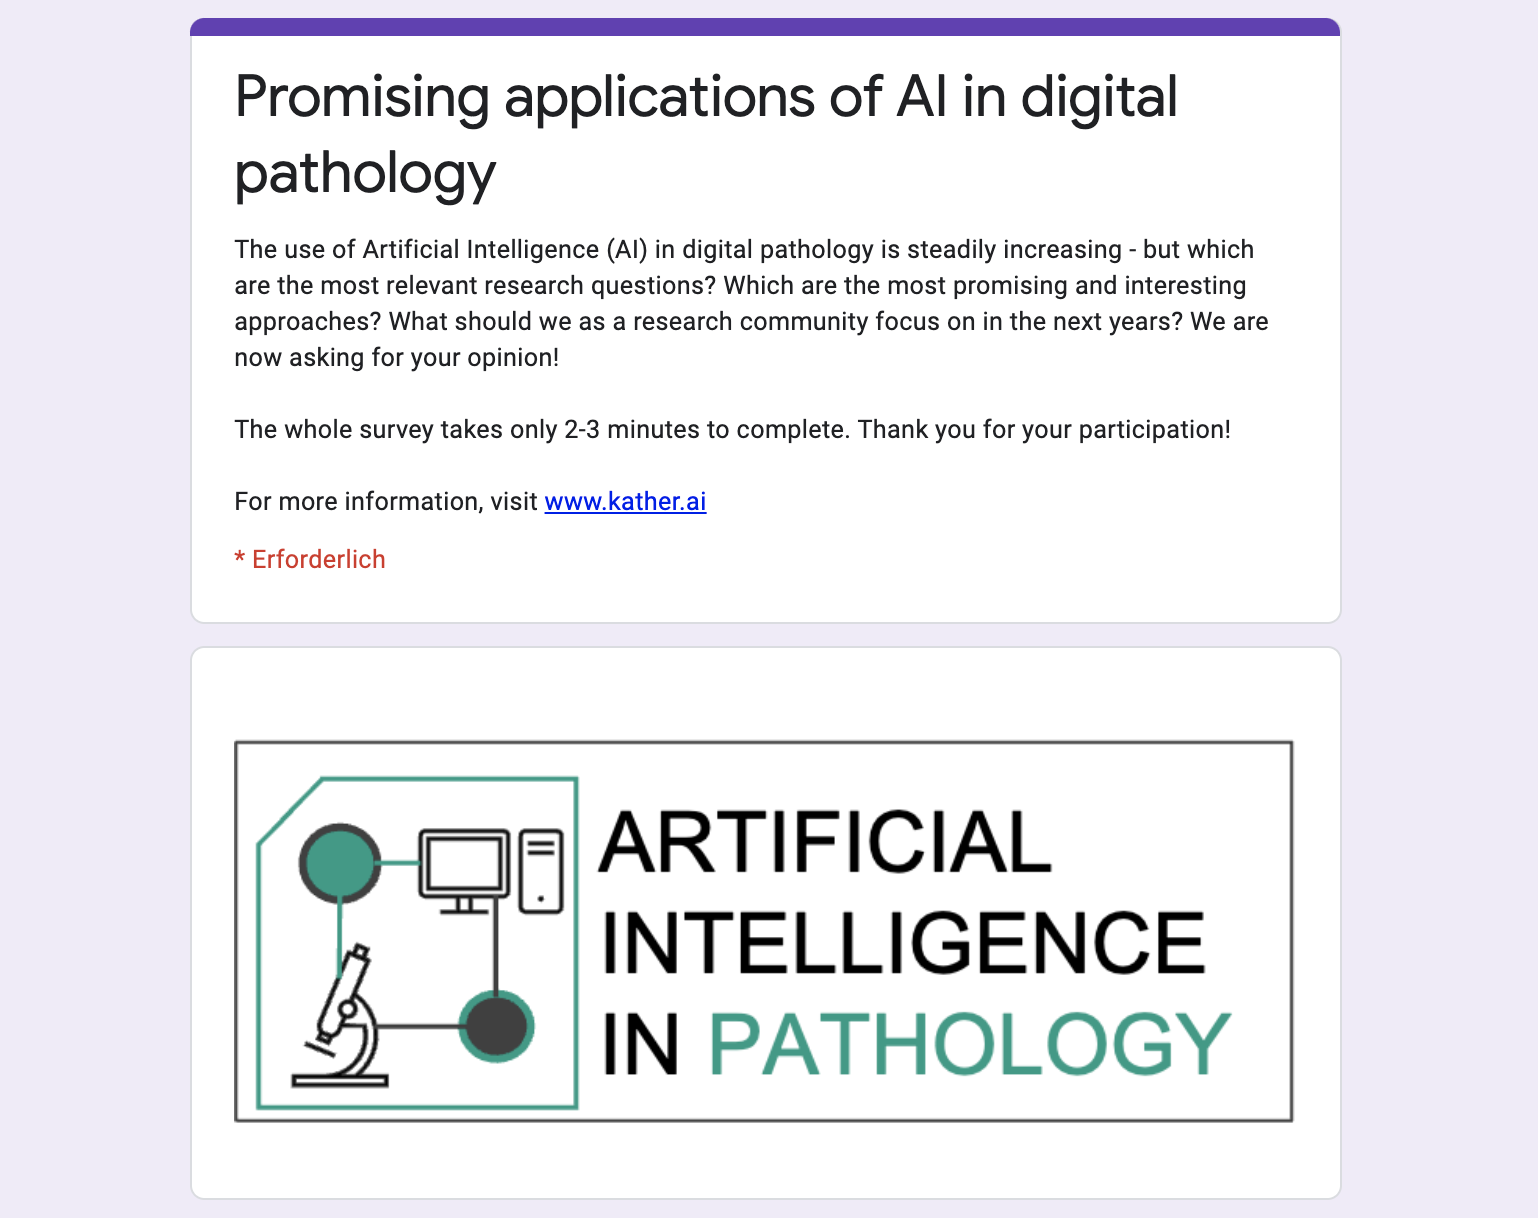 image from Survey on AI applications in pathology